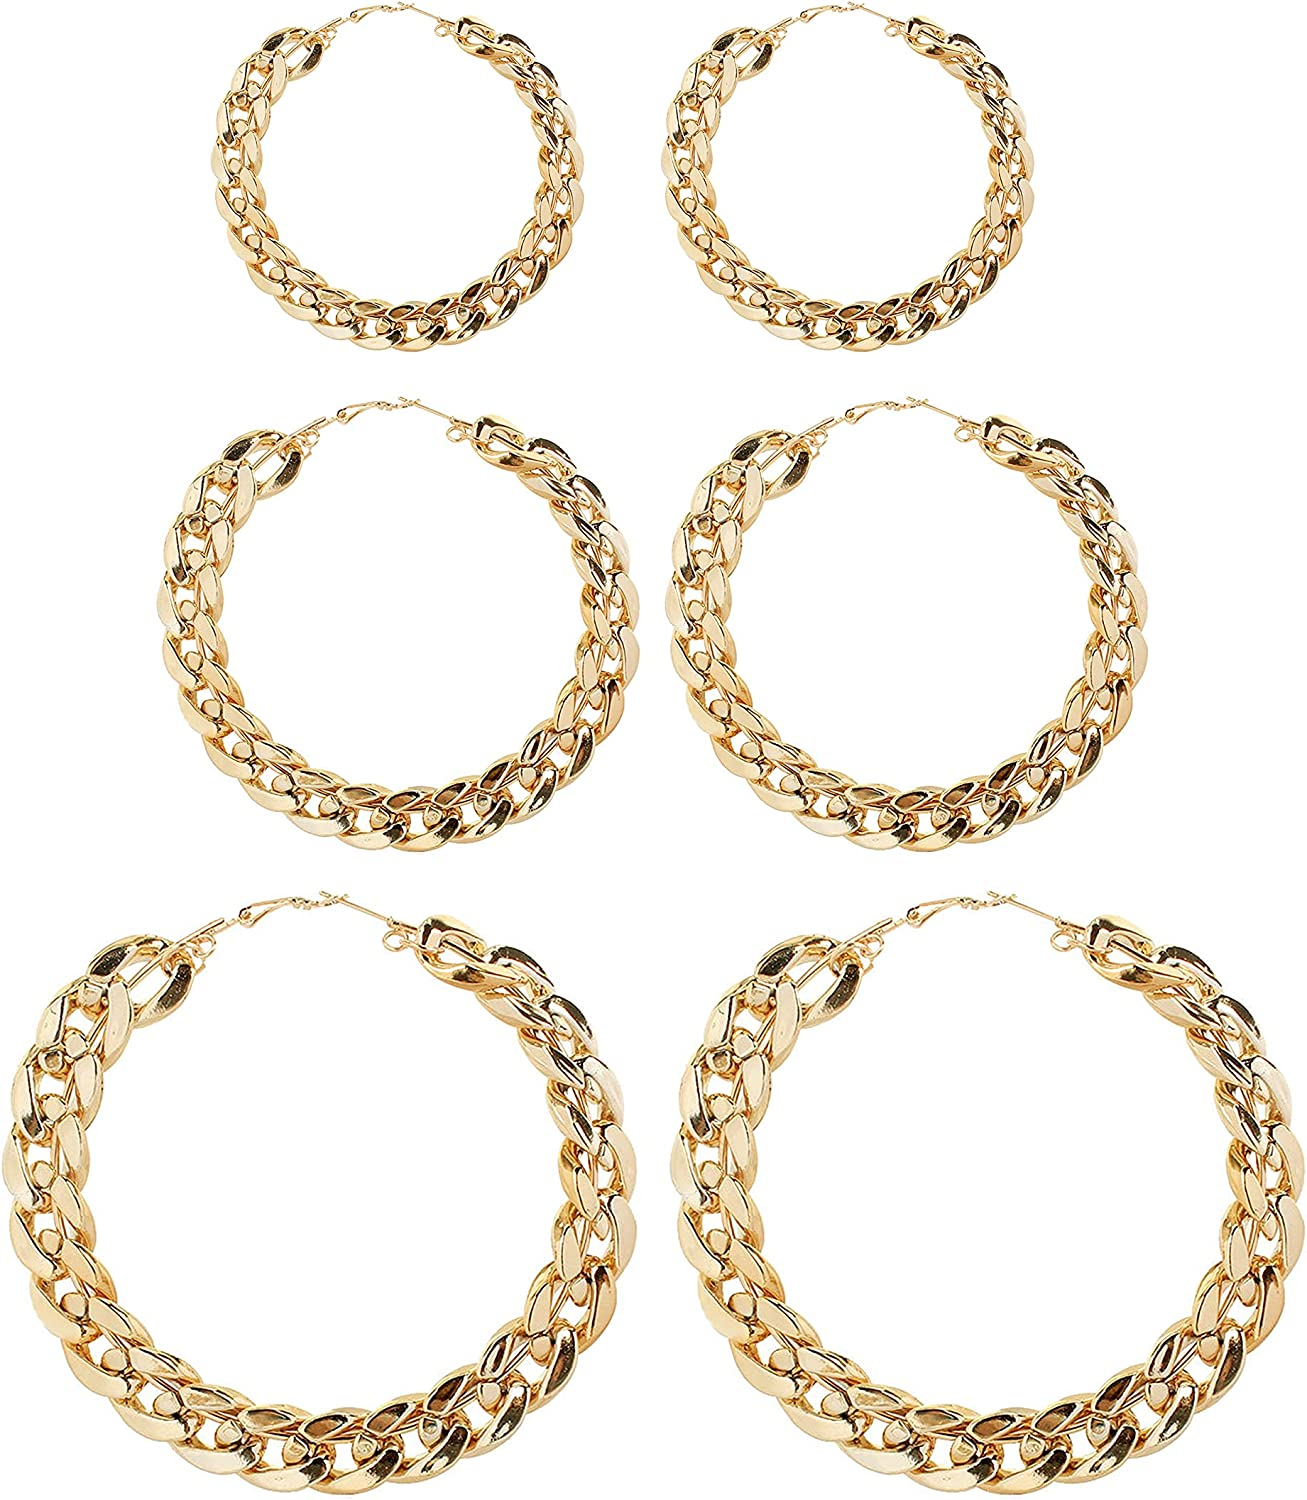 3 Pairs 60mm-80mm Large Gold Hoop Earrings Set Big Punk Circle Round Link Chain Shaped Earrings for Women Girls Chunky Jewelry